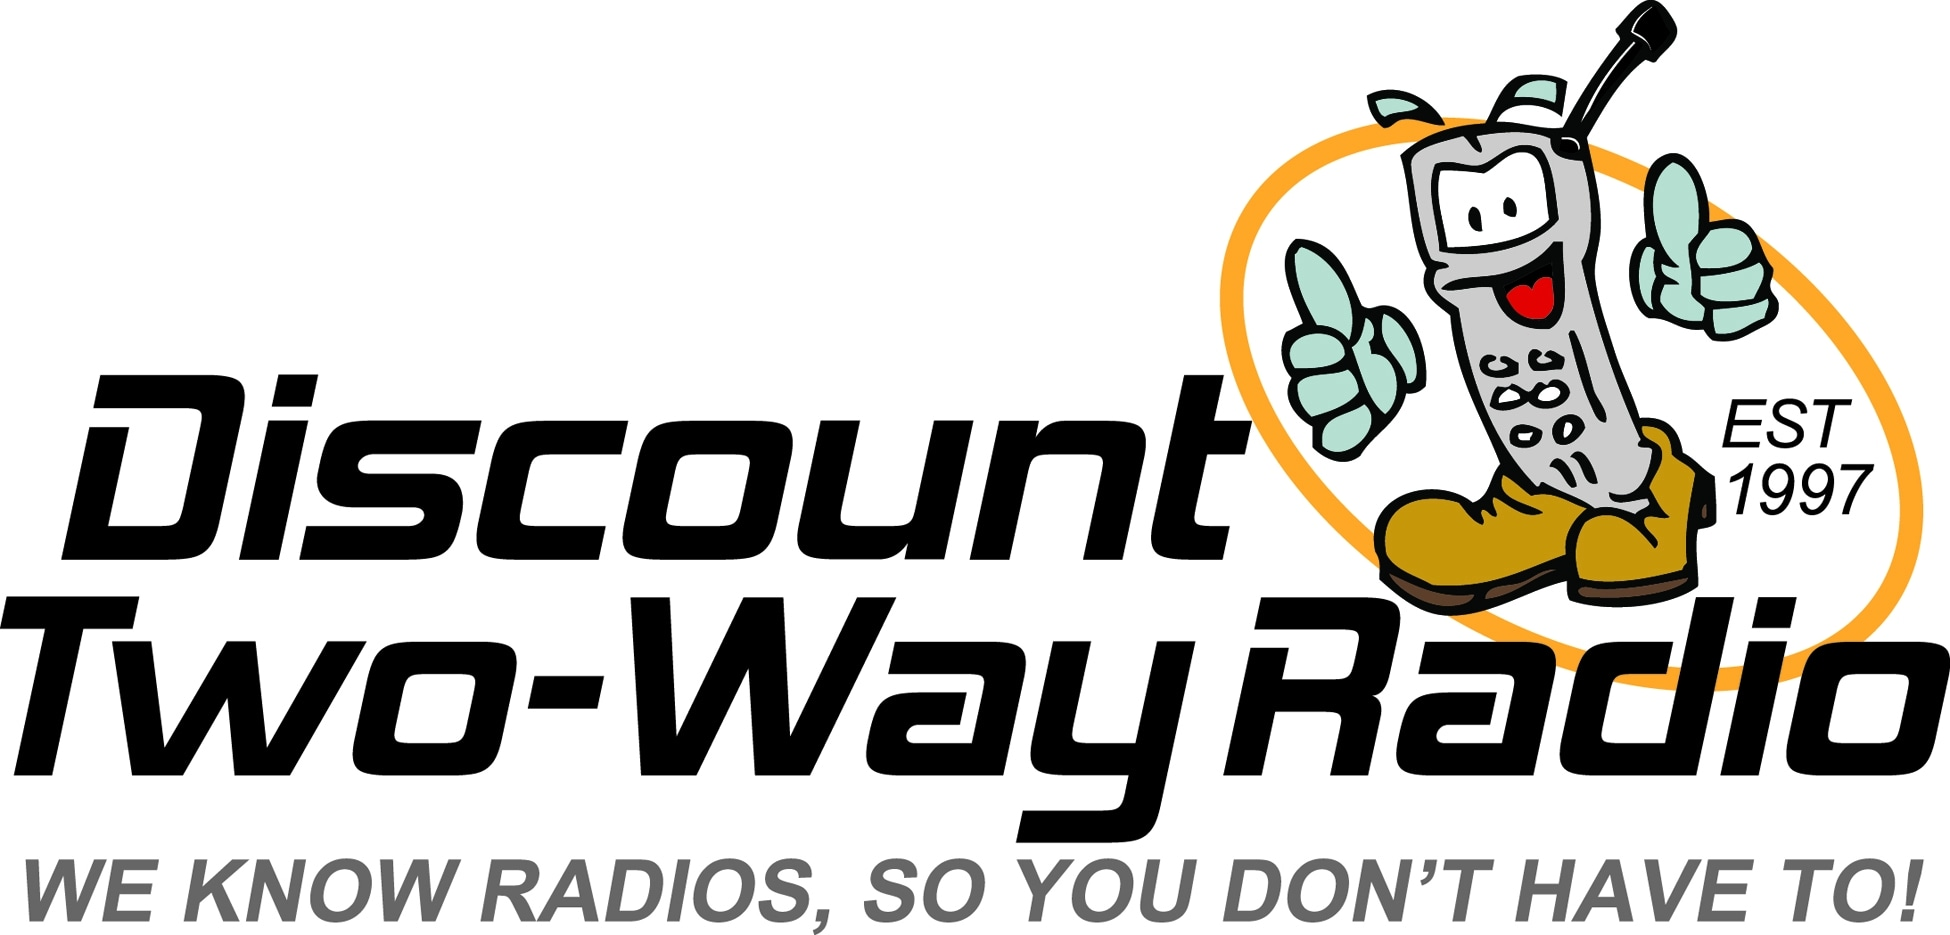 Discount Two-Way Radio promo codes